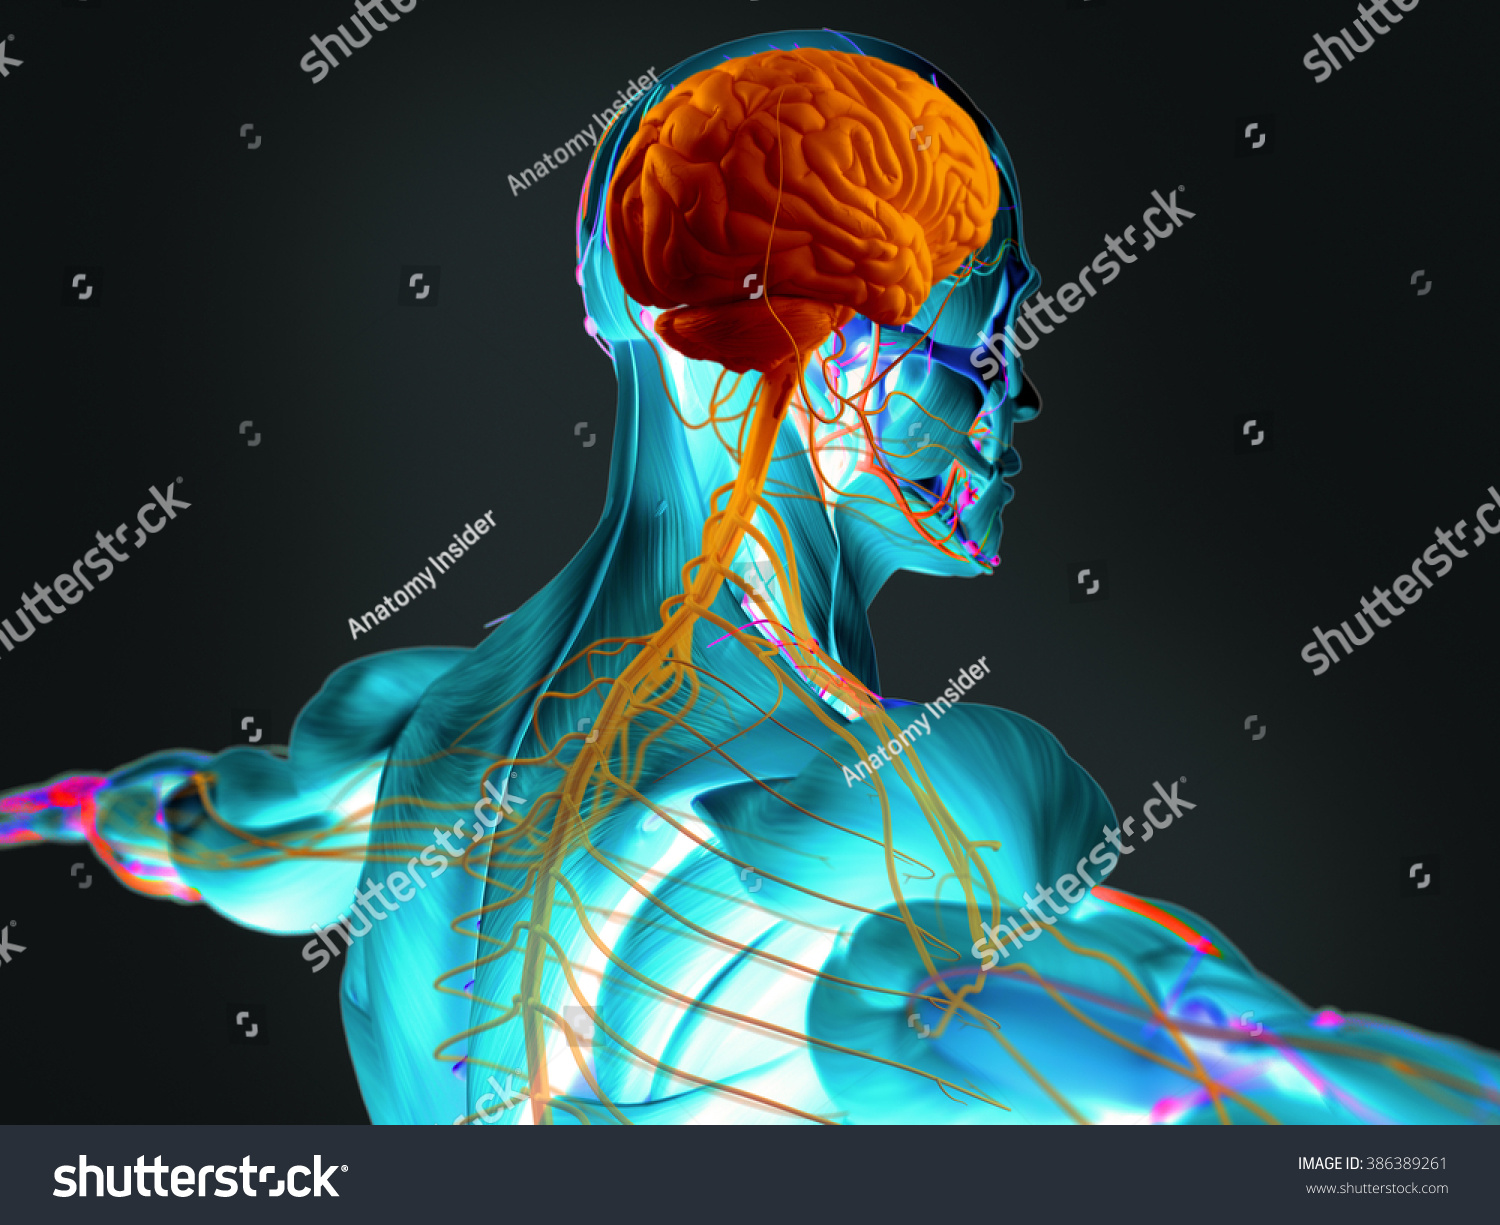 Human Anatomy 3 D Futuristic Scan Technology Stock Illustration ...